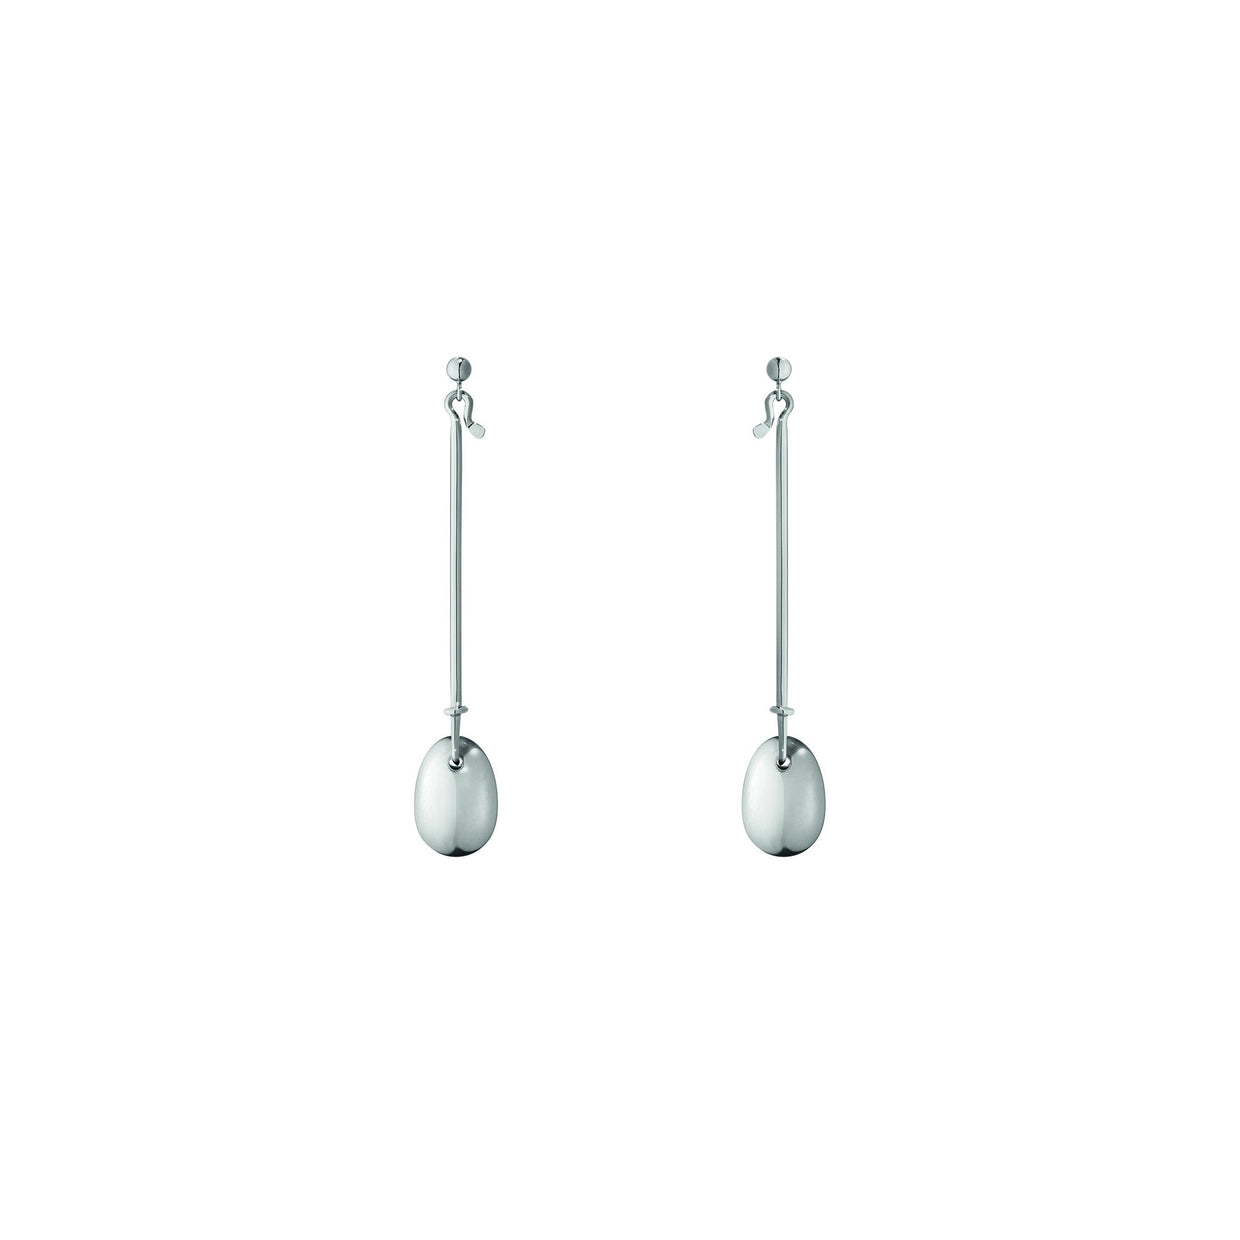 Georg Jensen Dew Drop Earrings in Sterling Silver-Hamilton & Inches